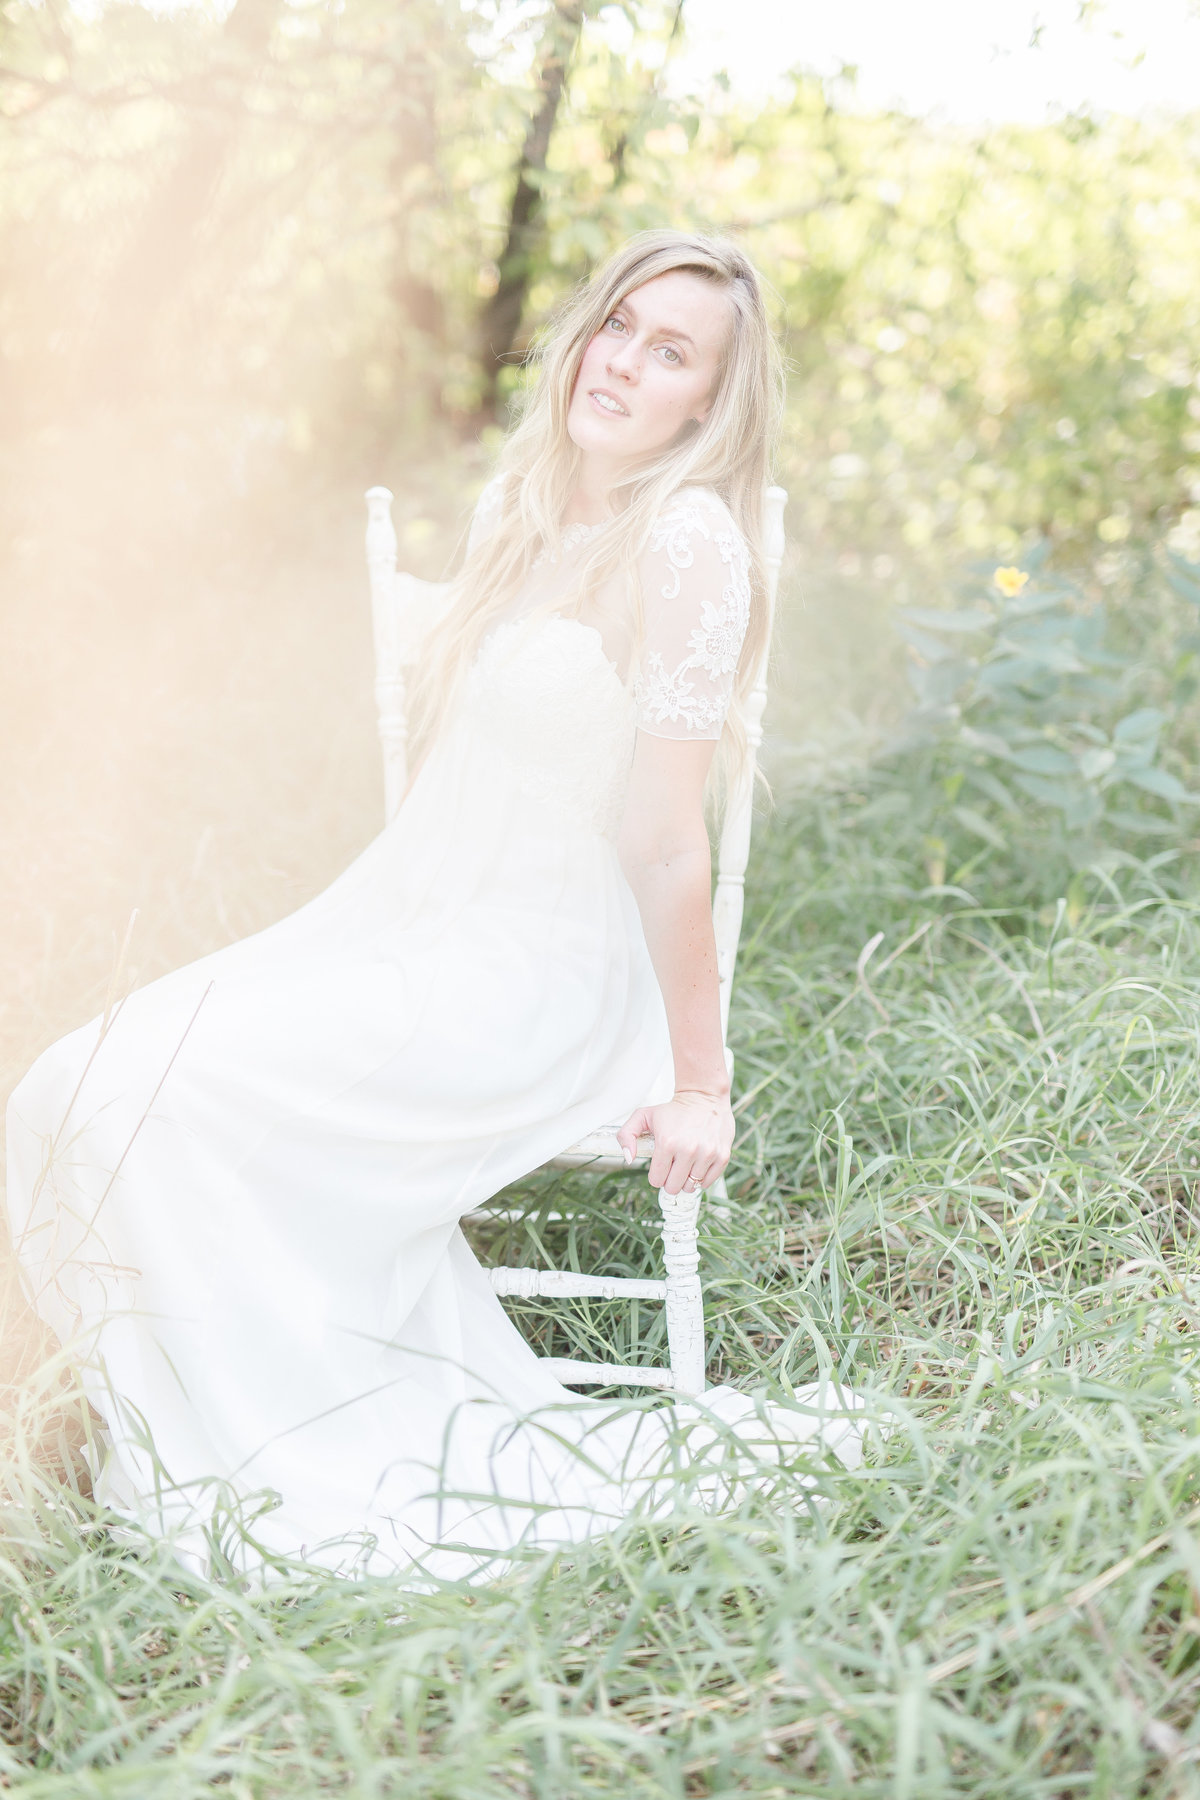 Kailey - Styled Shoot - New Edits-115